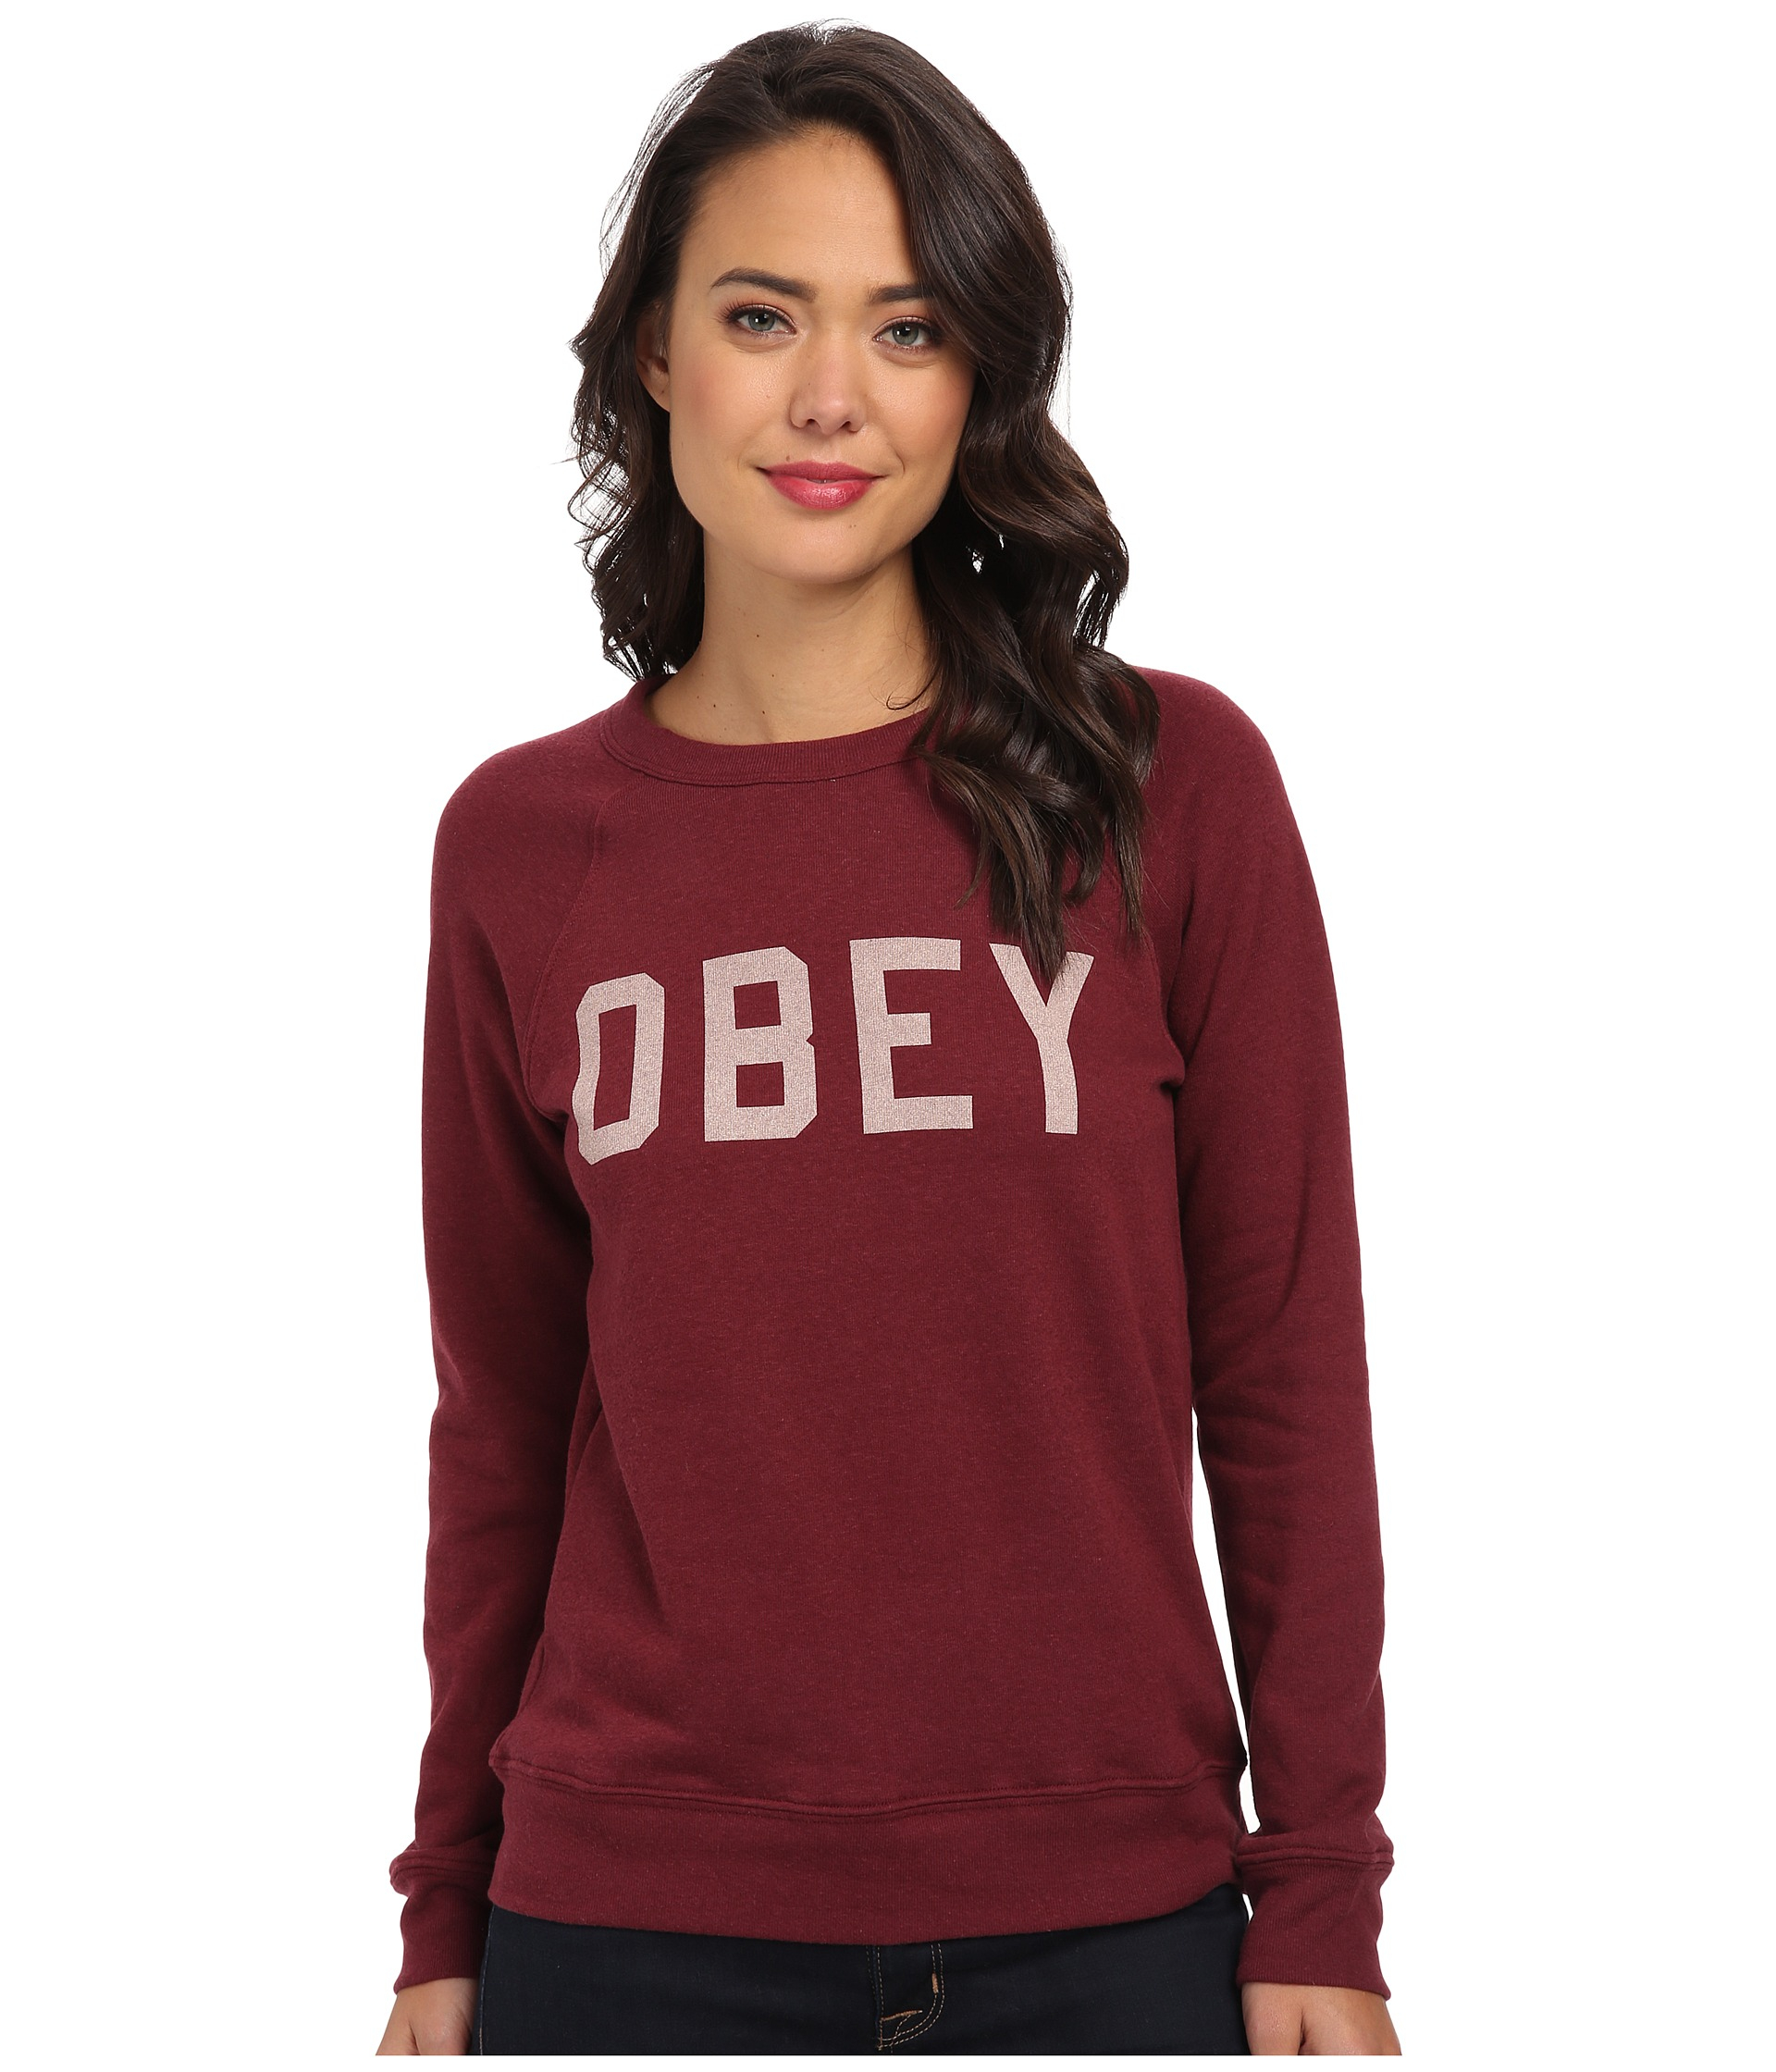 ShopSleuth's Obey Store Locator found 0 store locations in malls and outlets in 0 states. Below is the count of all of these Obey locations broken down by state. Obey is ranked # out of 1, Men's & Women's Clothing stores in the U.S., based on the number of locations.